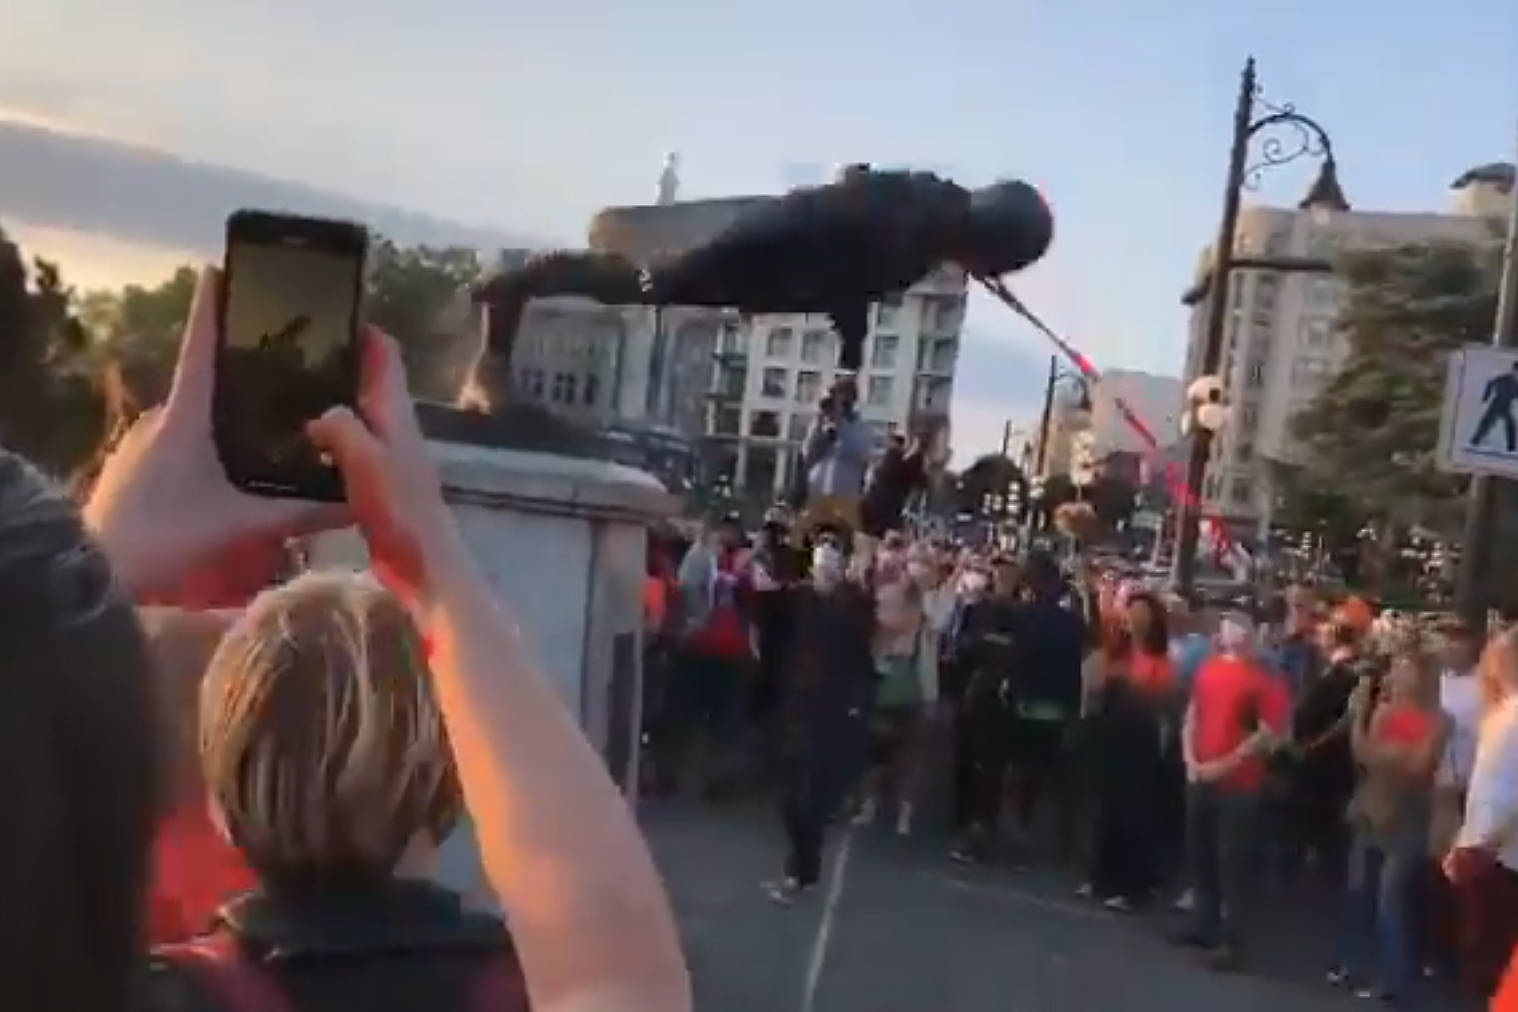 A crowd pulls down the Captain James Cook statue in downtown Victoria. (Siiam Hamilton/Twitter)